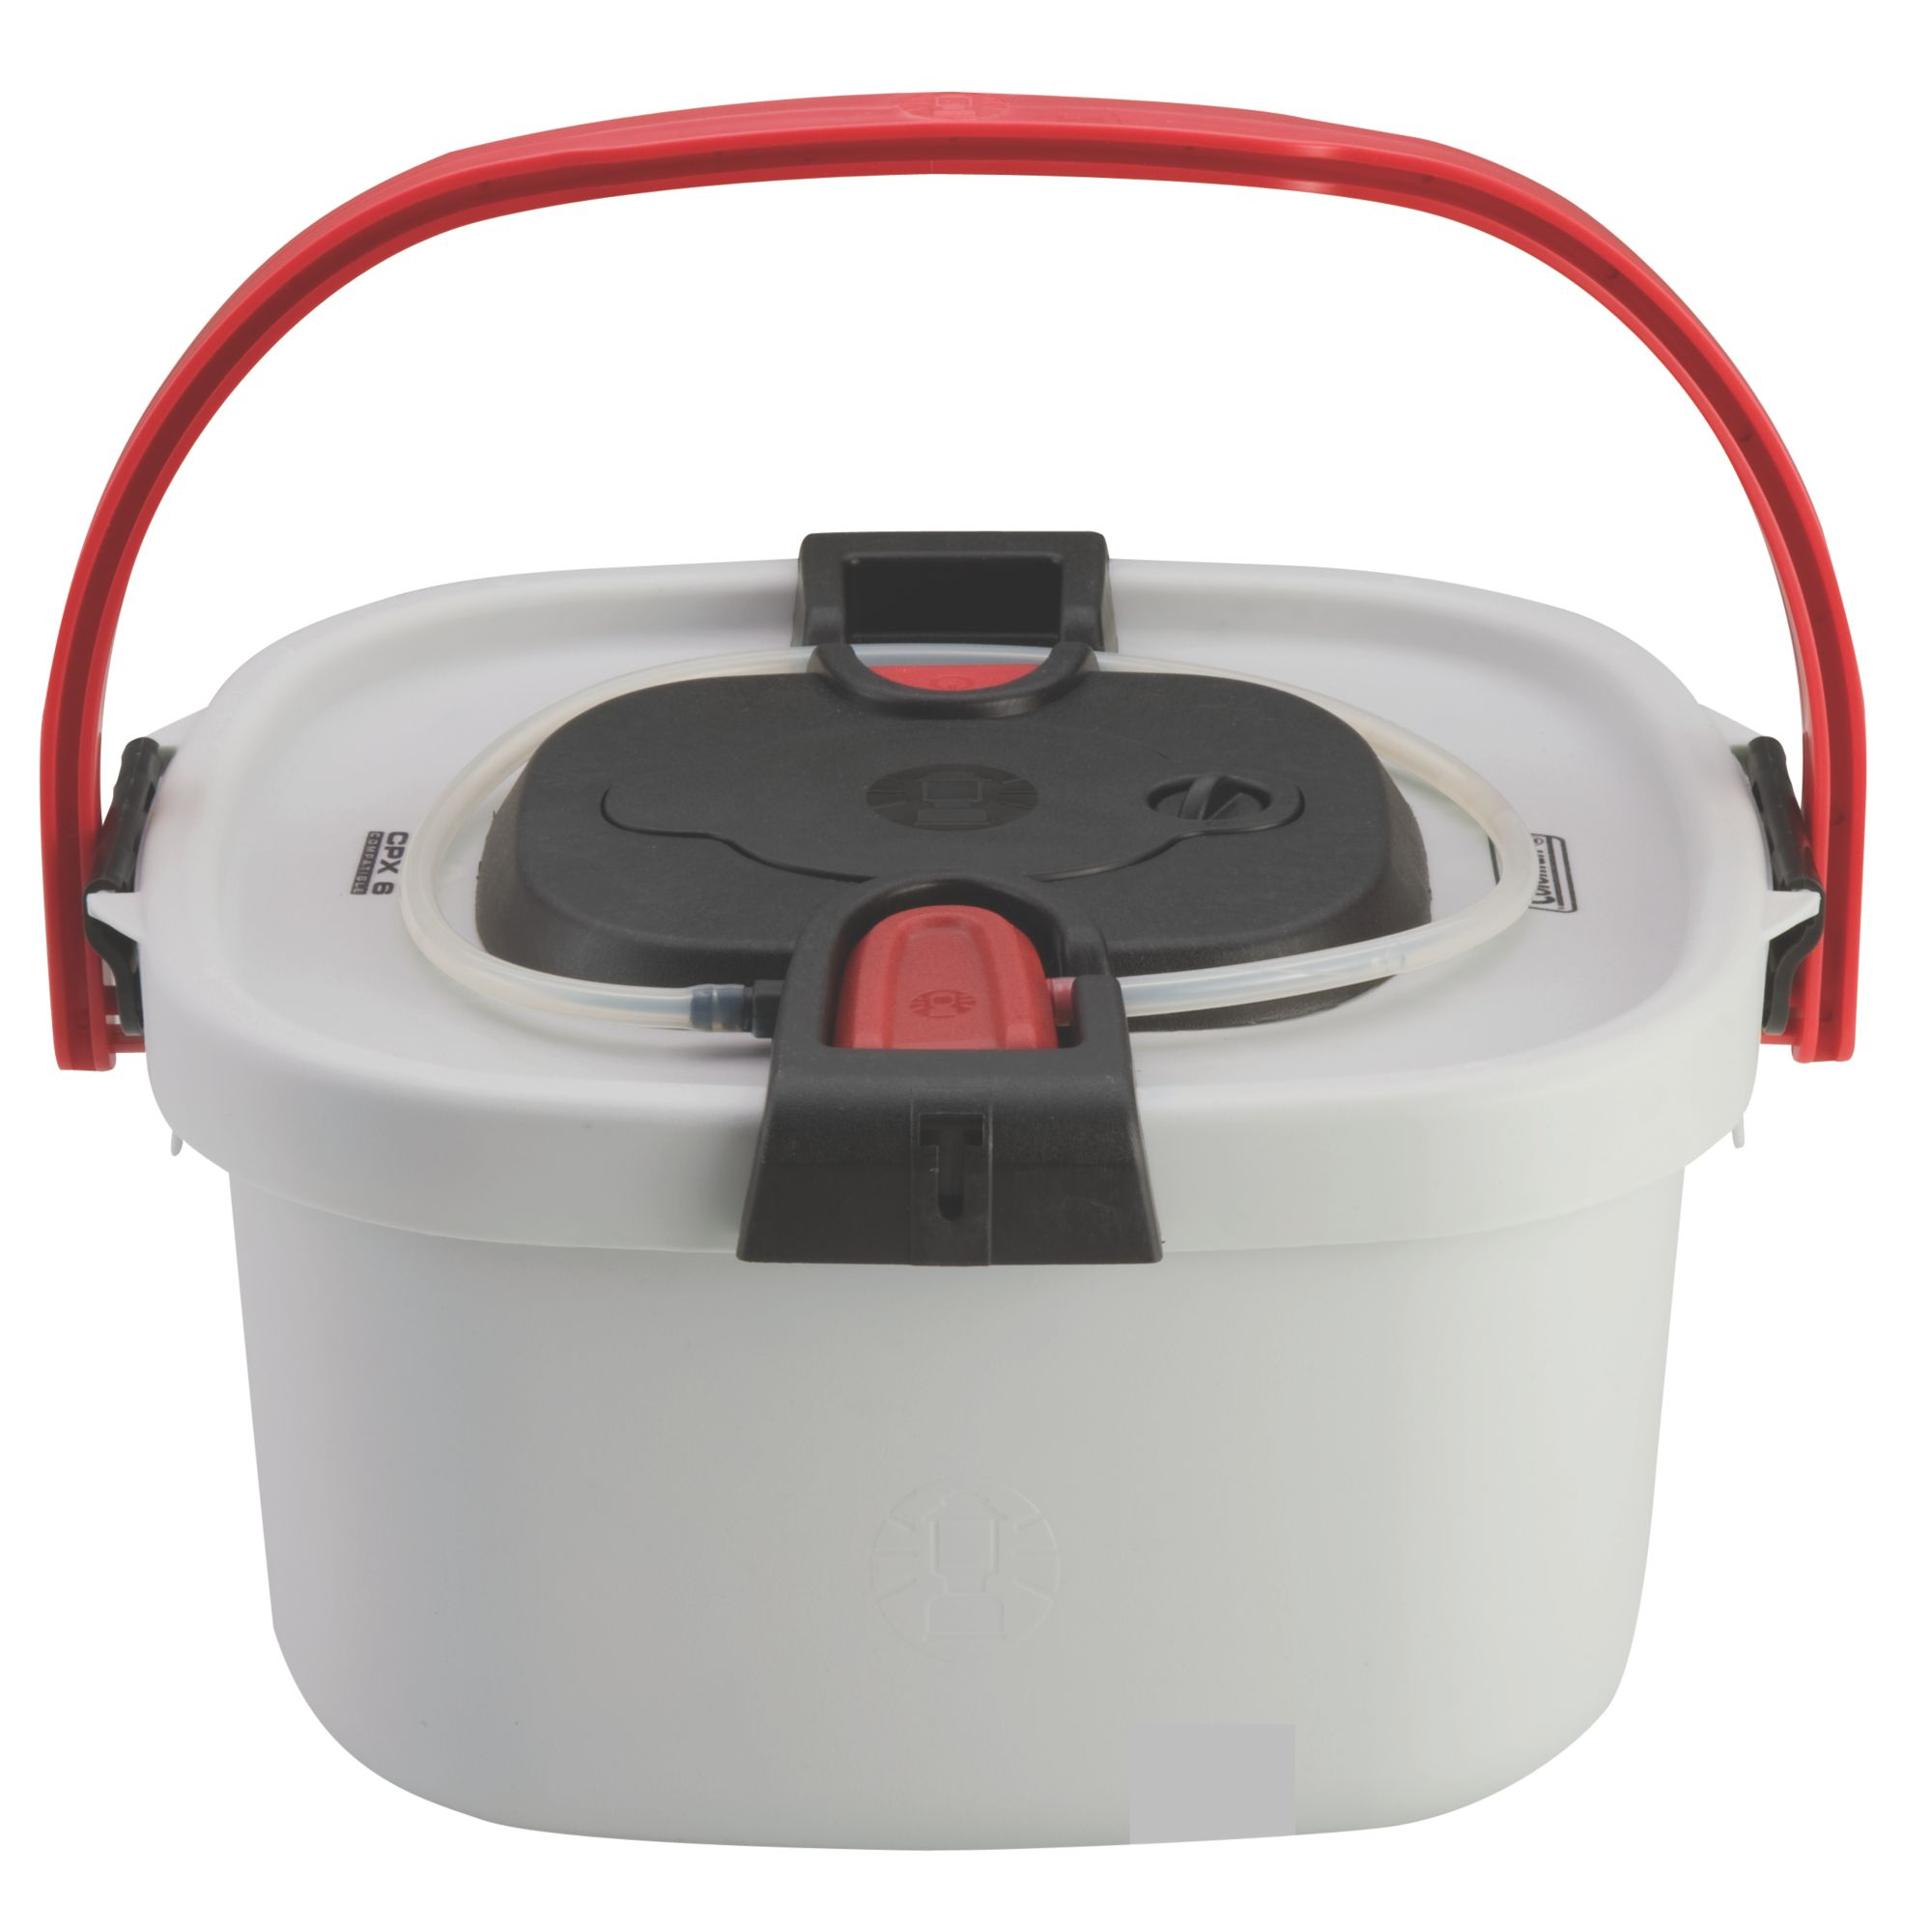 CPX® 6 ALL-IN-ONE PORTABLE SINK | Coleman